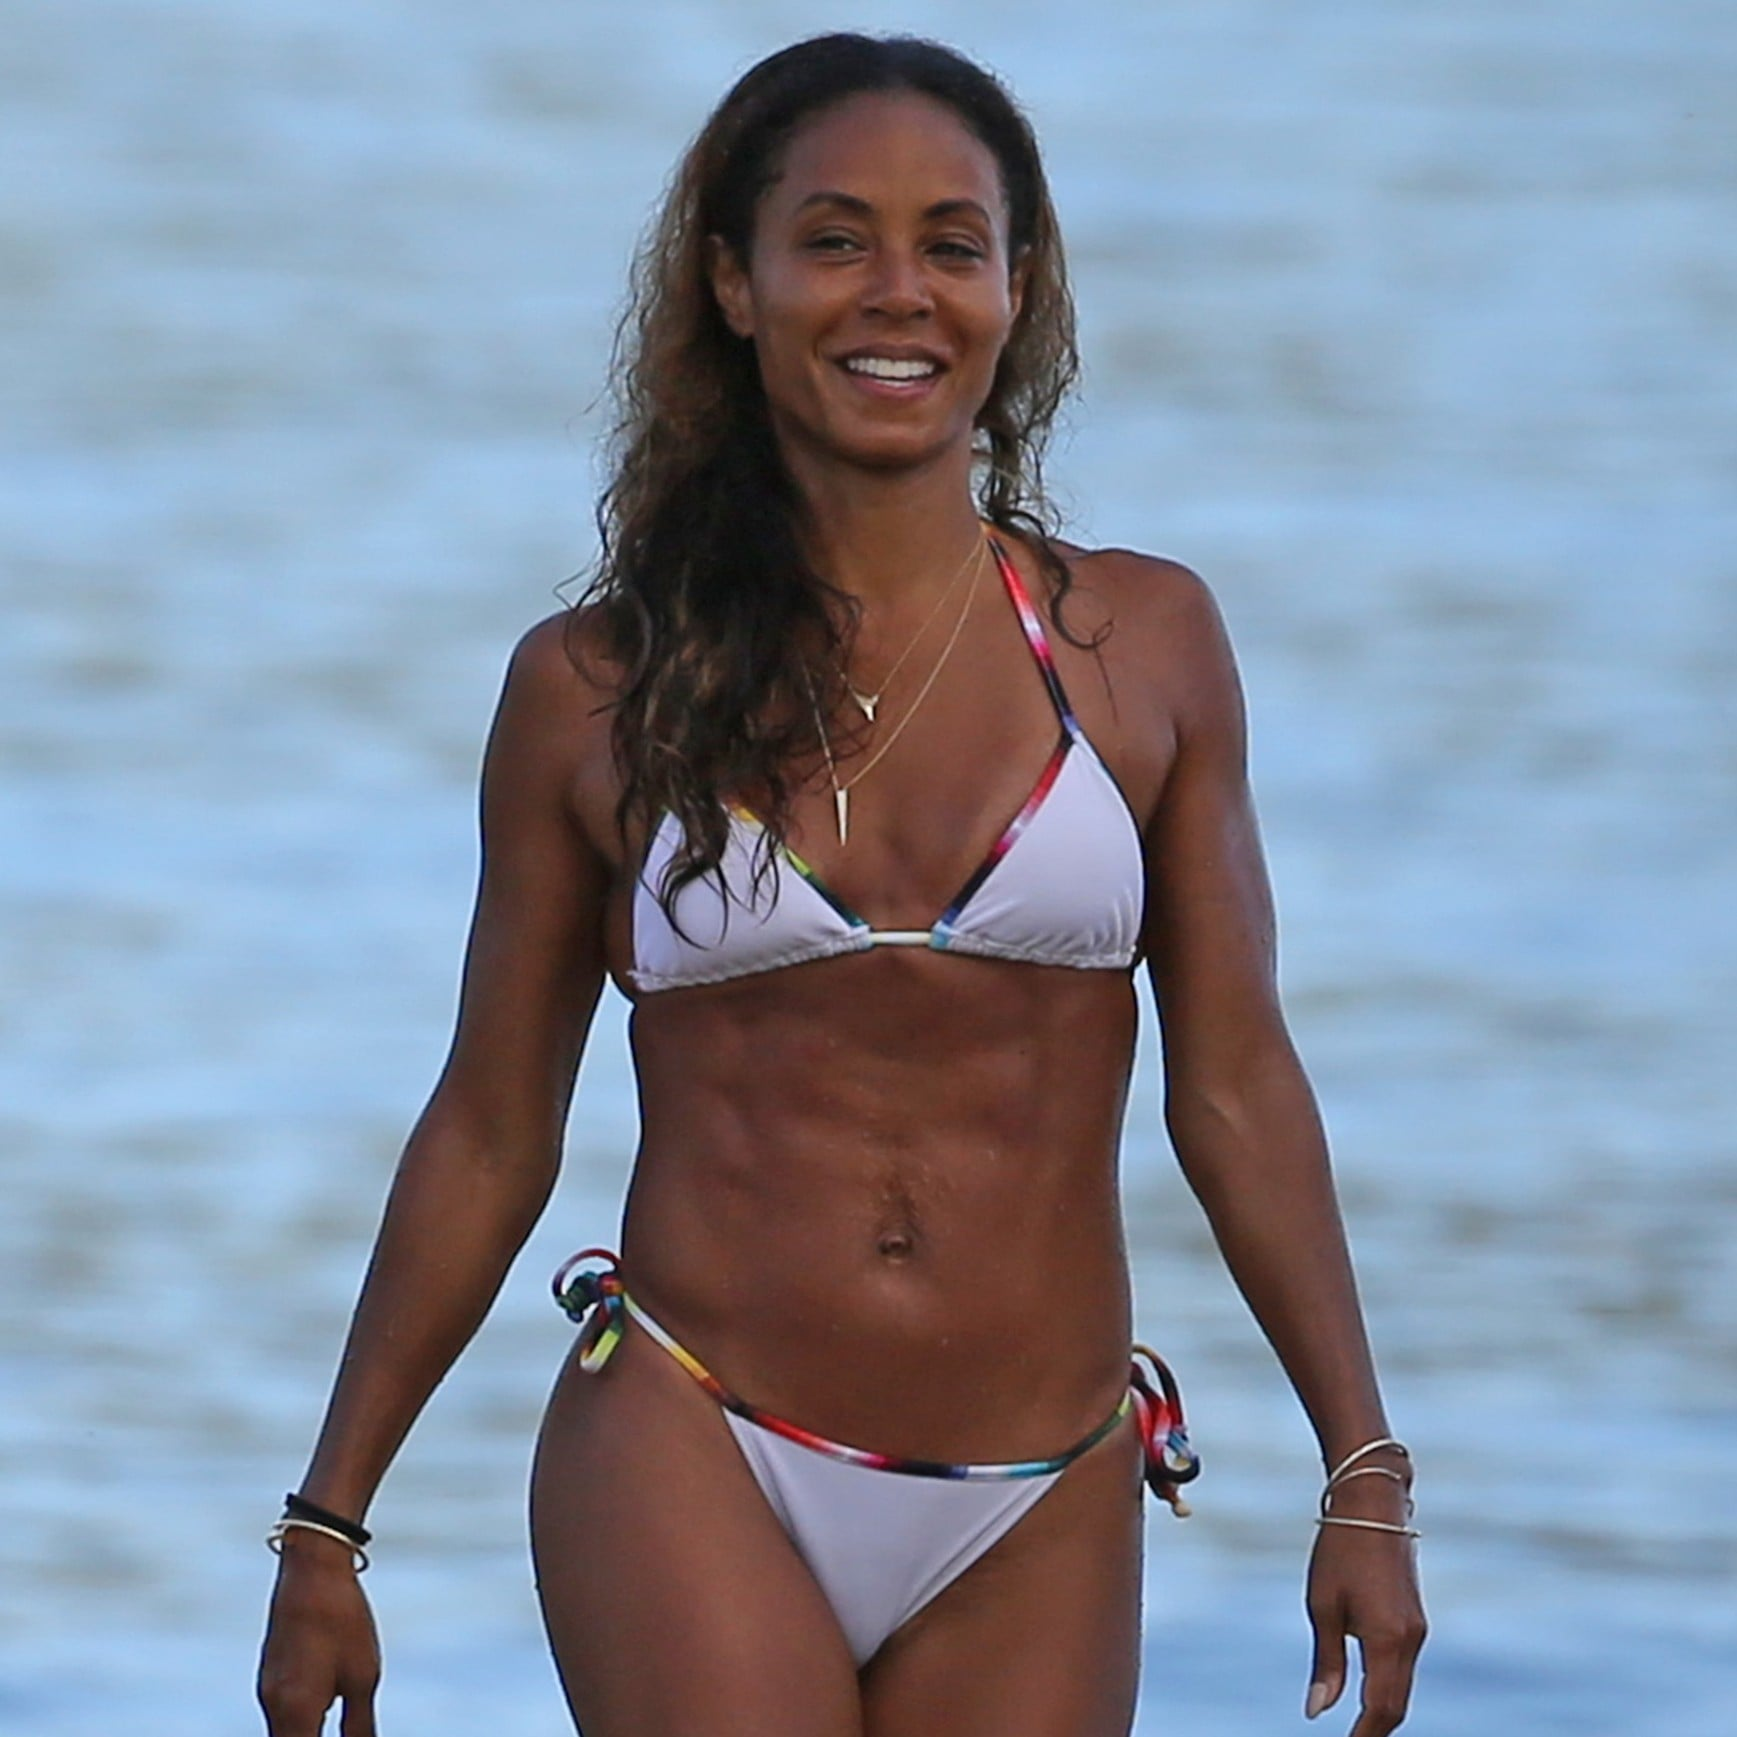 Jada pinkett smith sexy photos